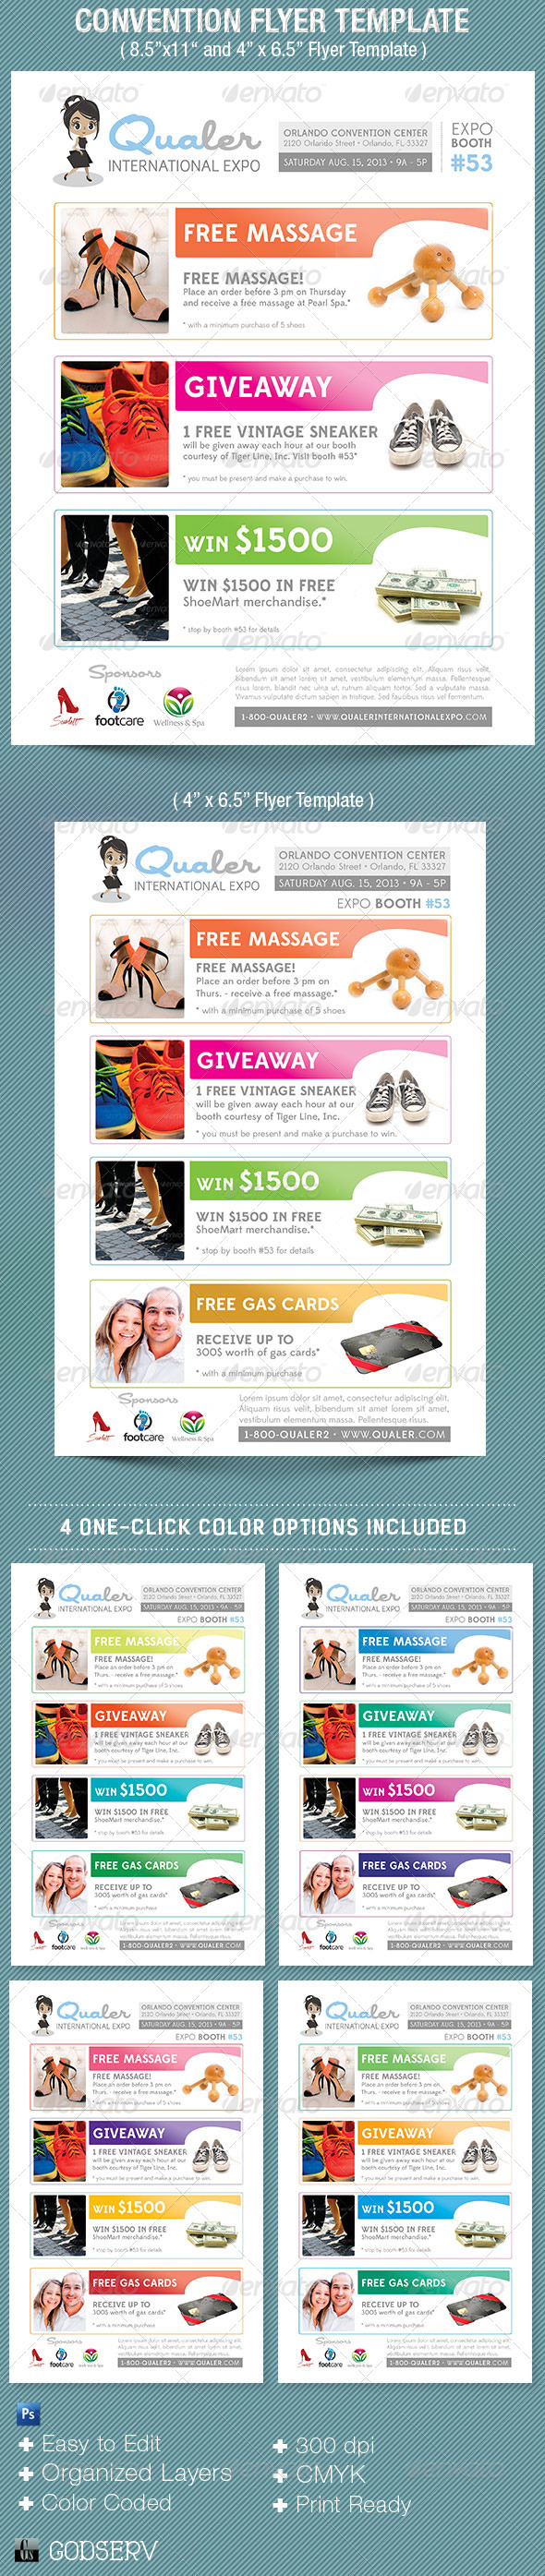 Convention Flyer Template - Commerce Flyers